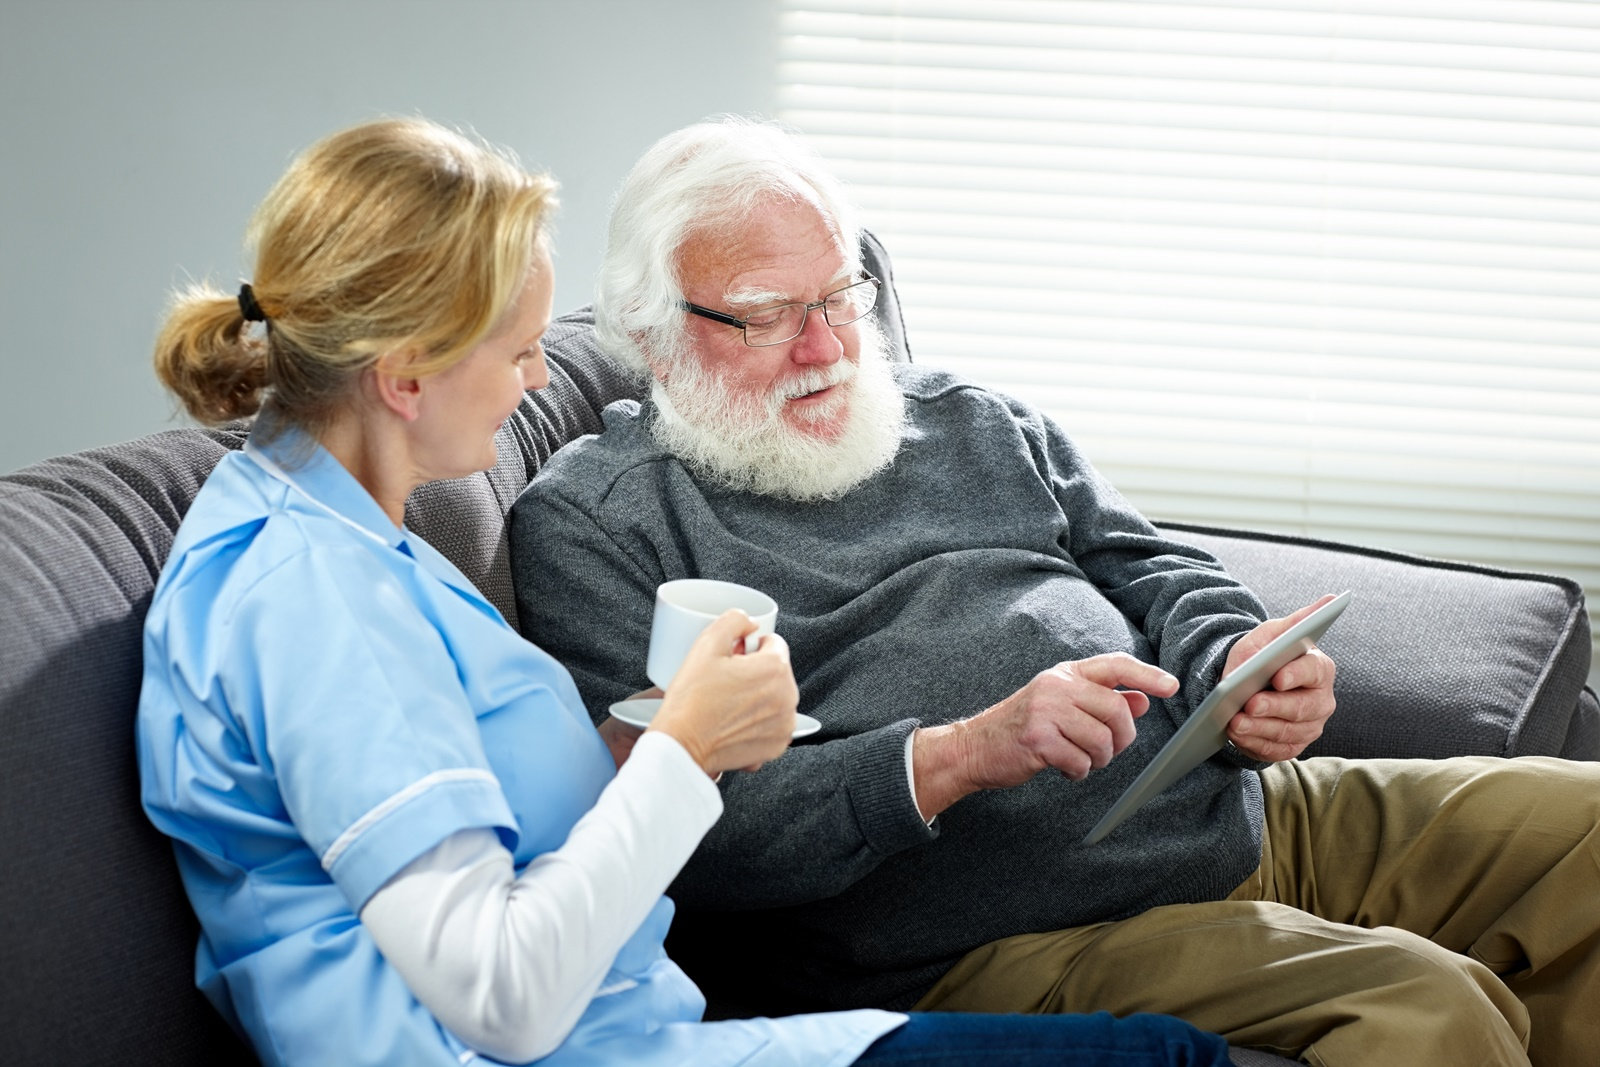 care worker with aged care resident and ipad